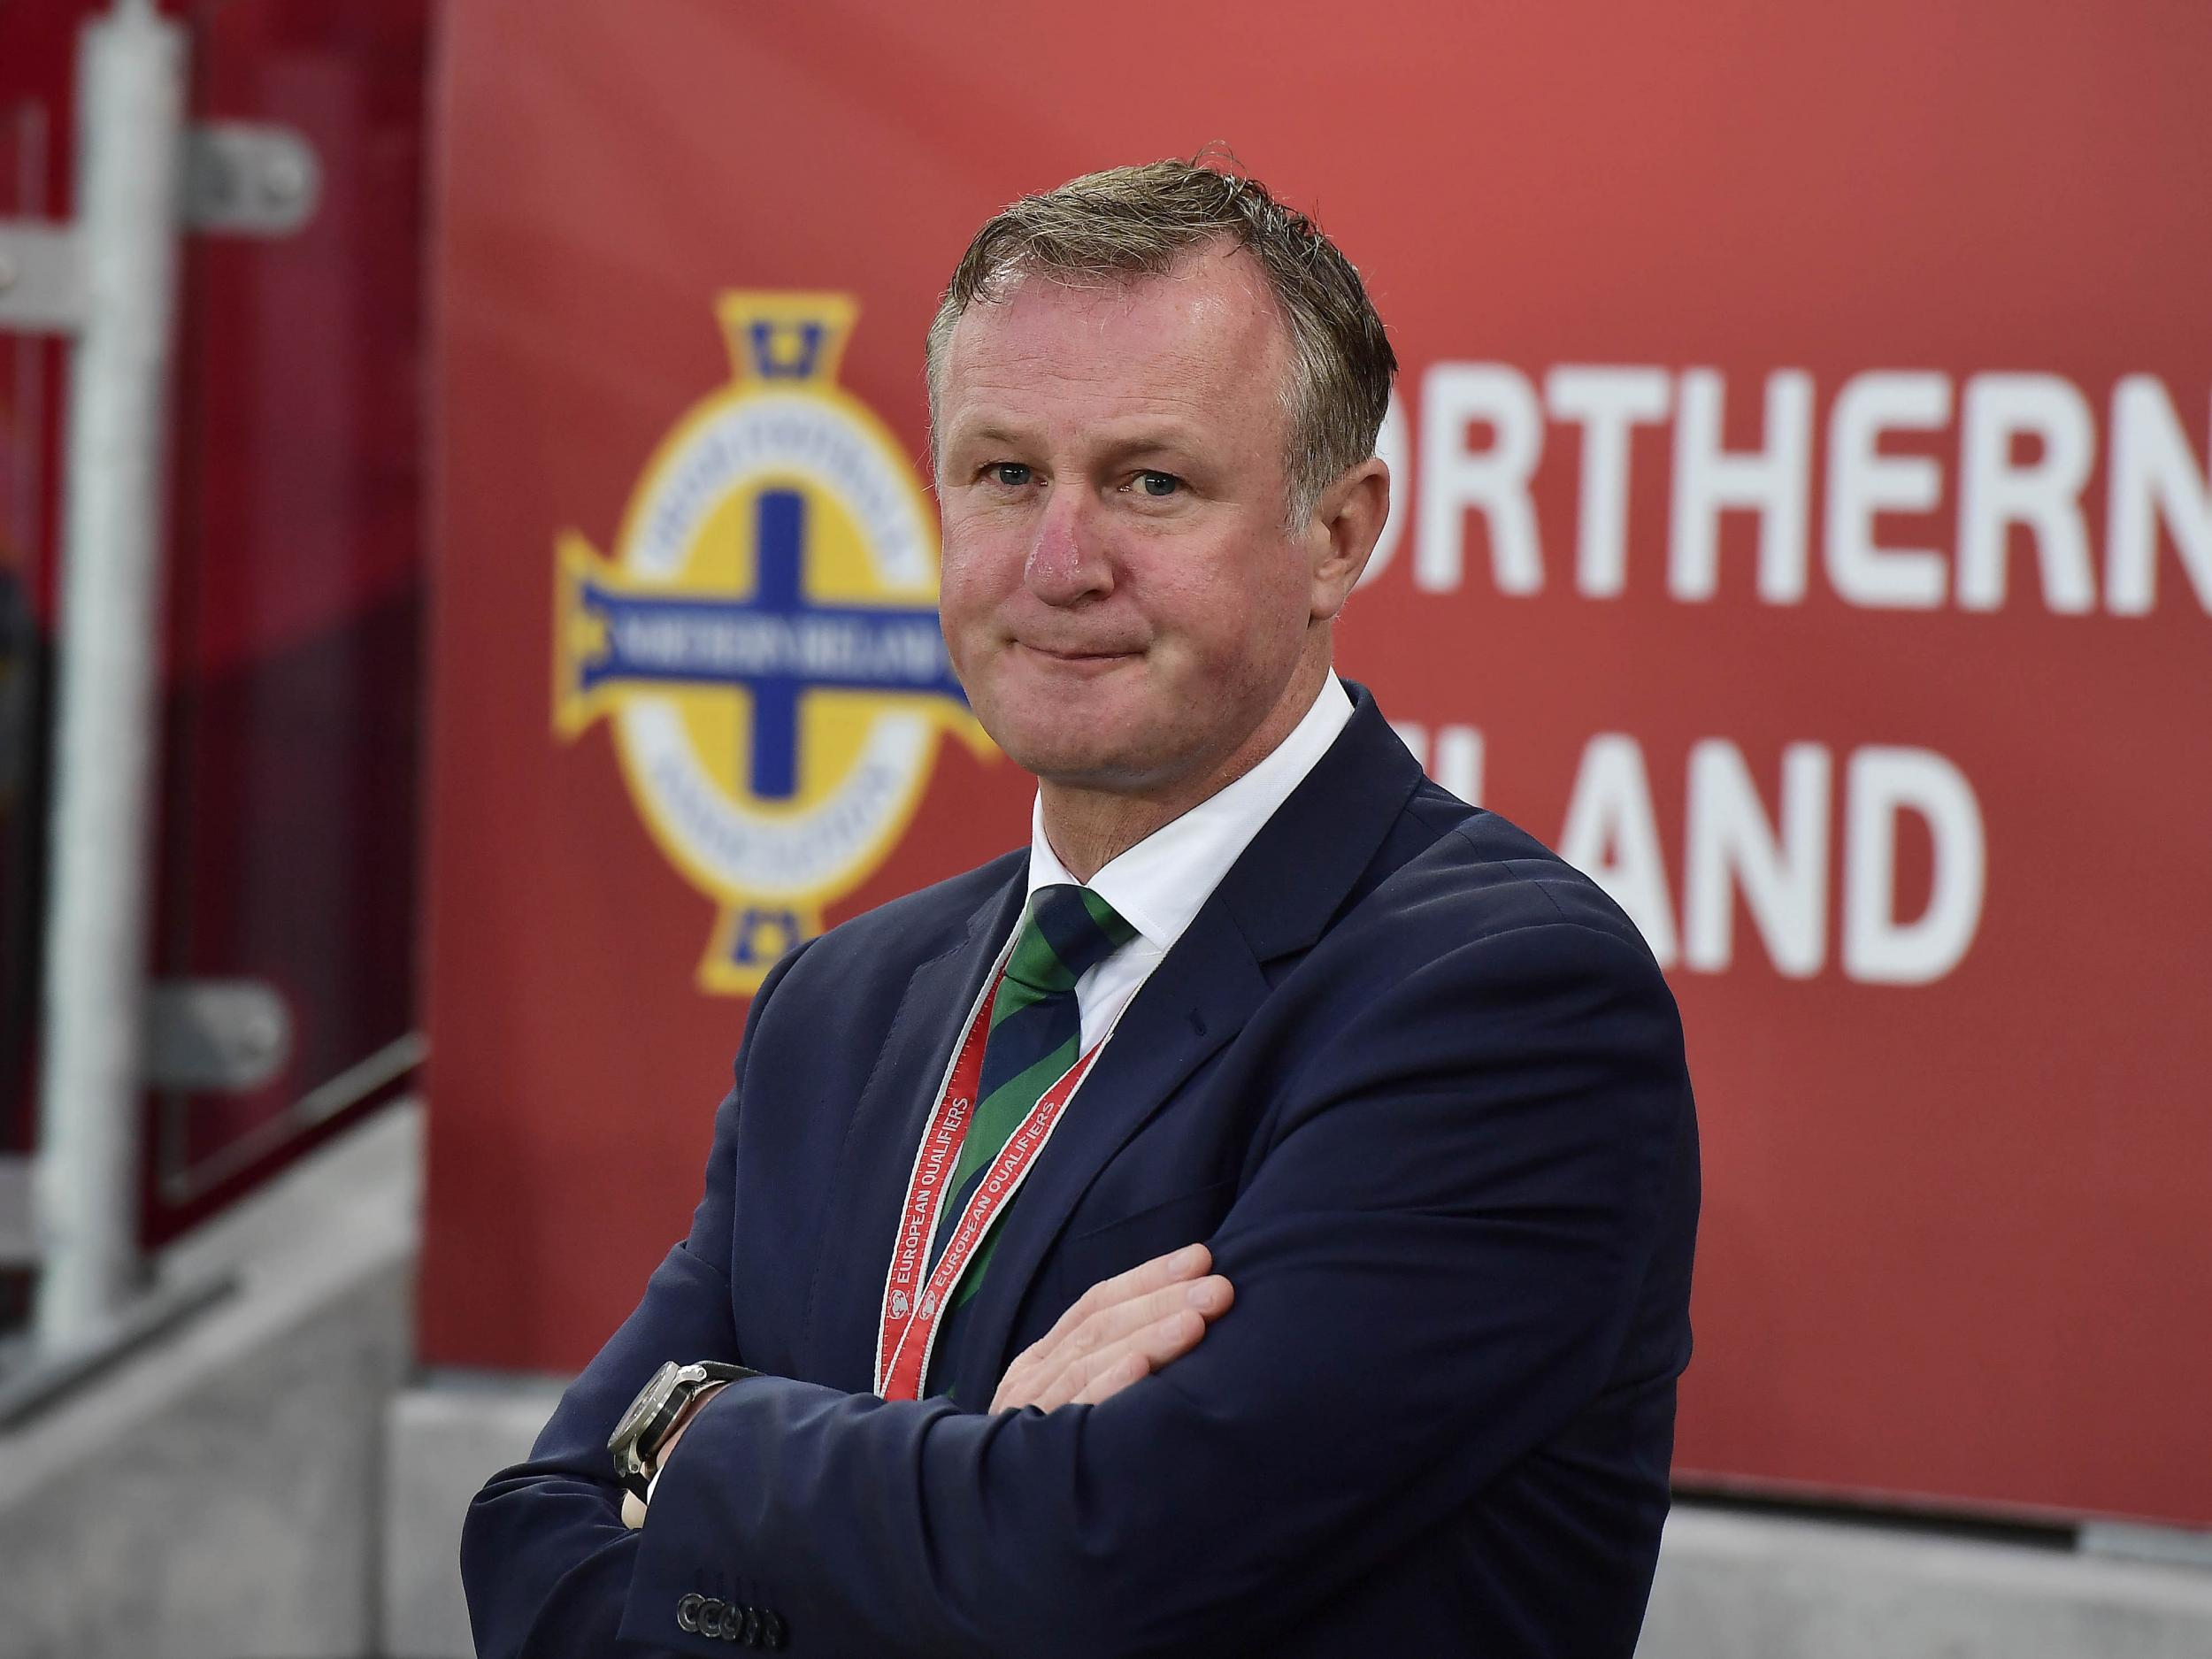 Northern Ireland manager Michael O'Neill arrested on suspicion of drink-driving